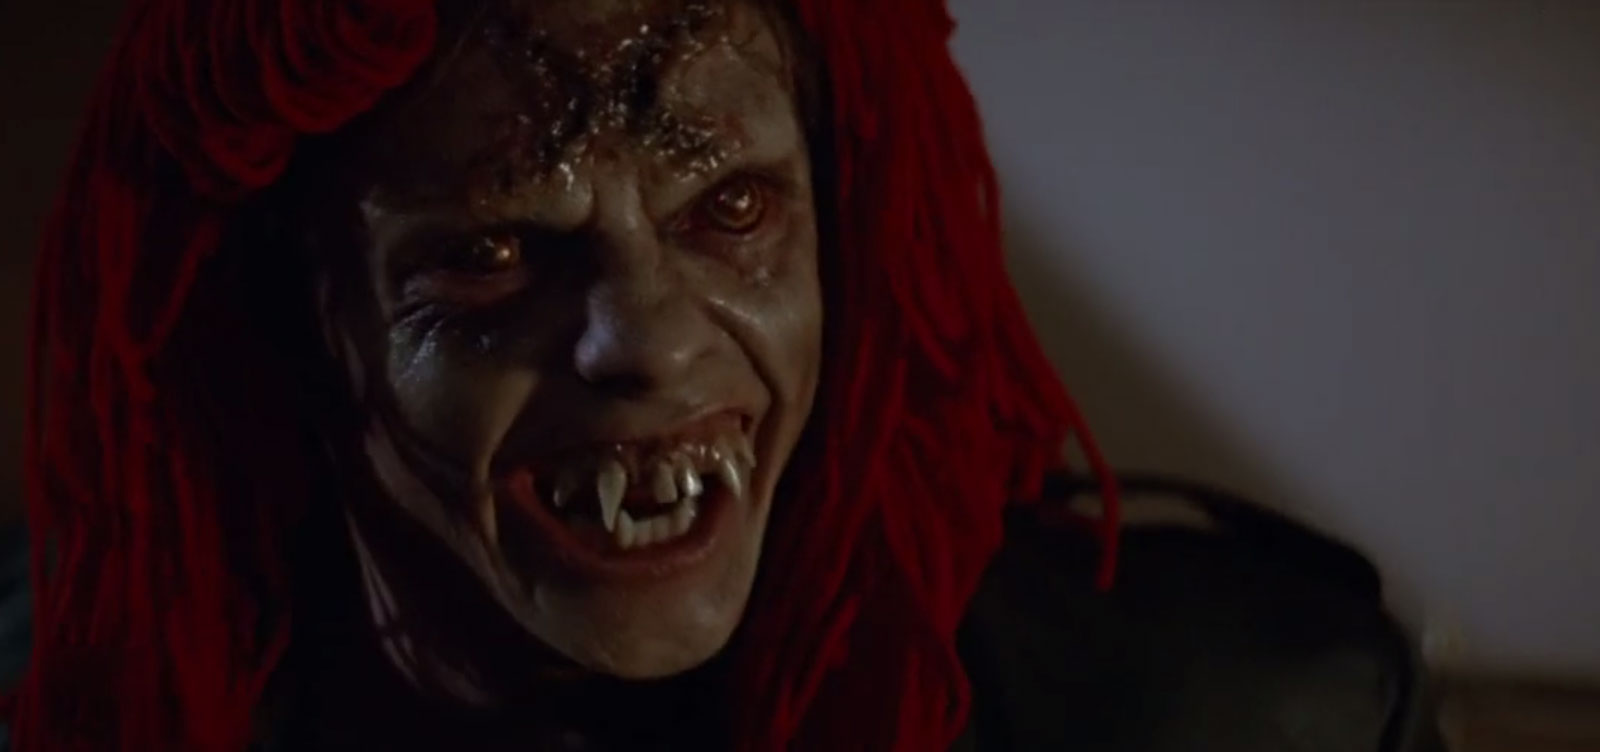 Fright_Night_85_Review_Images_V06